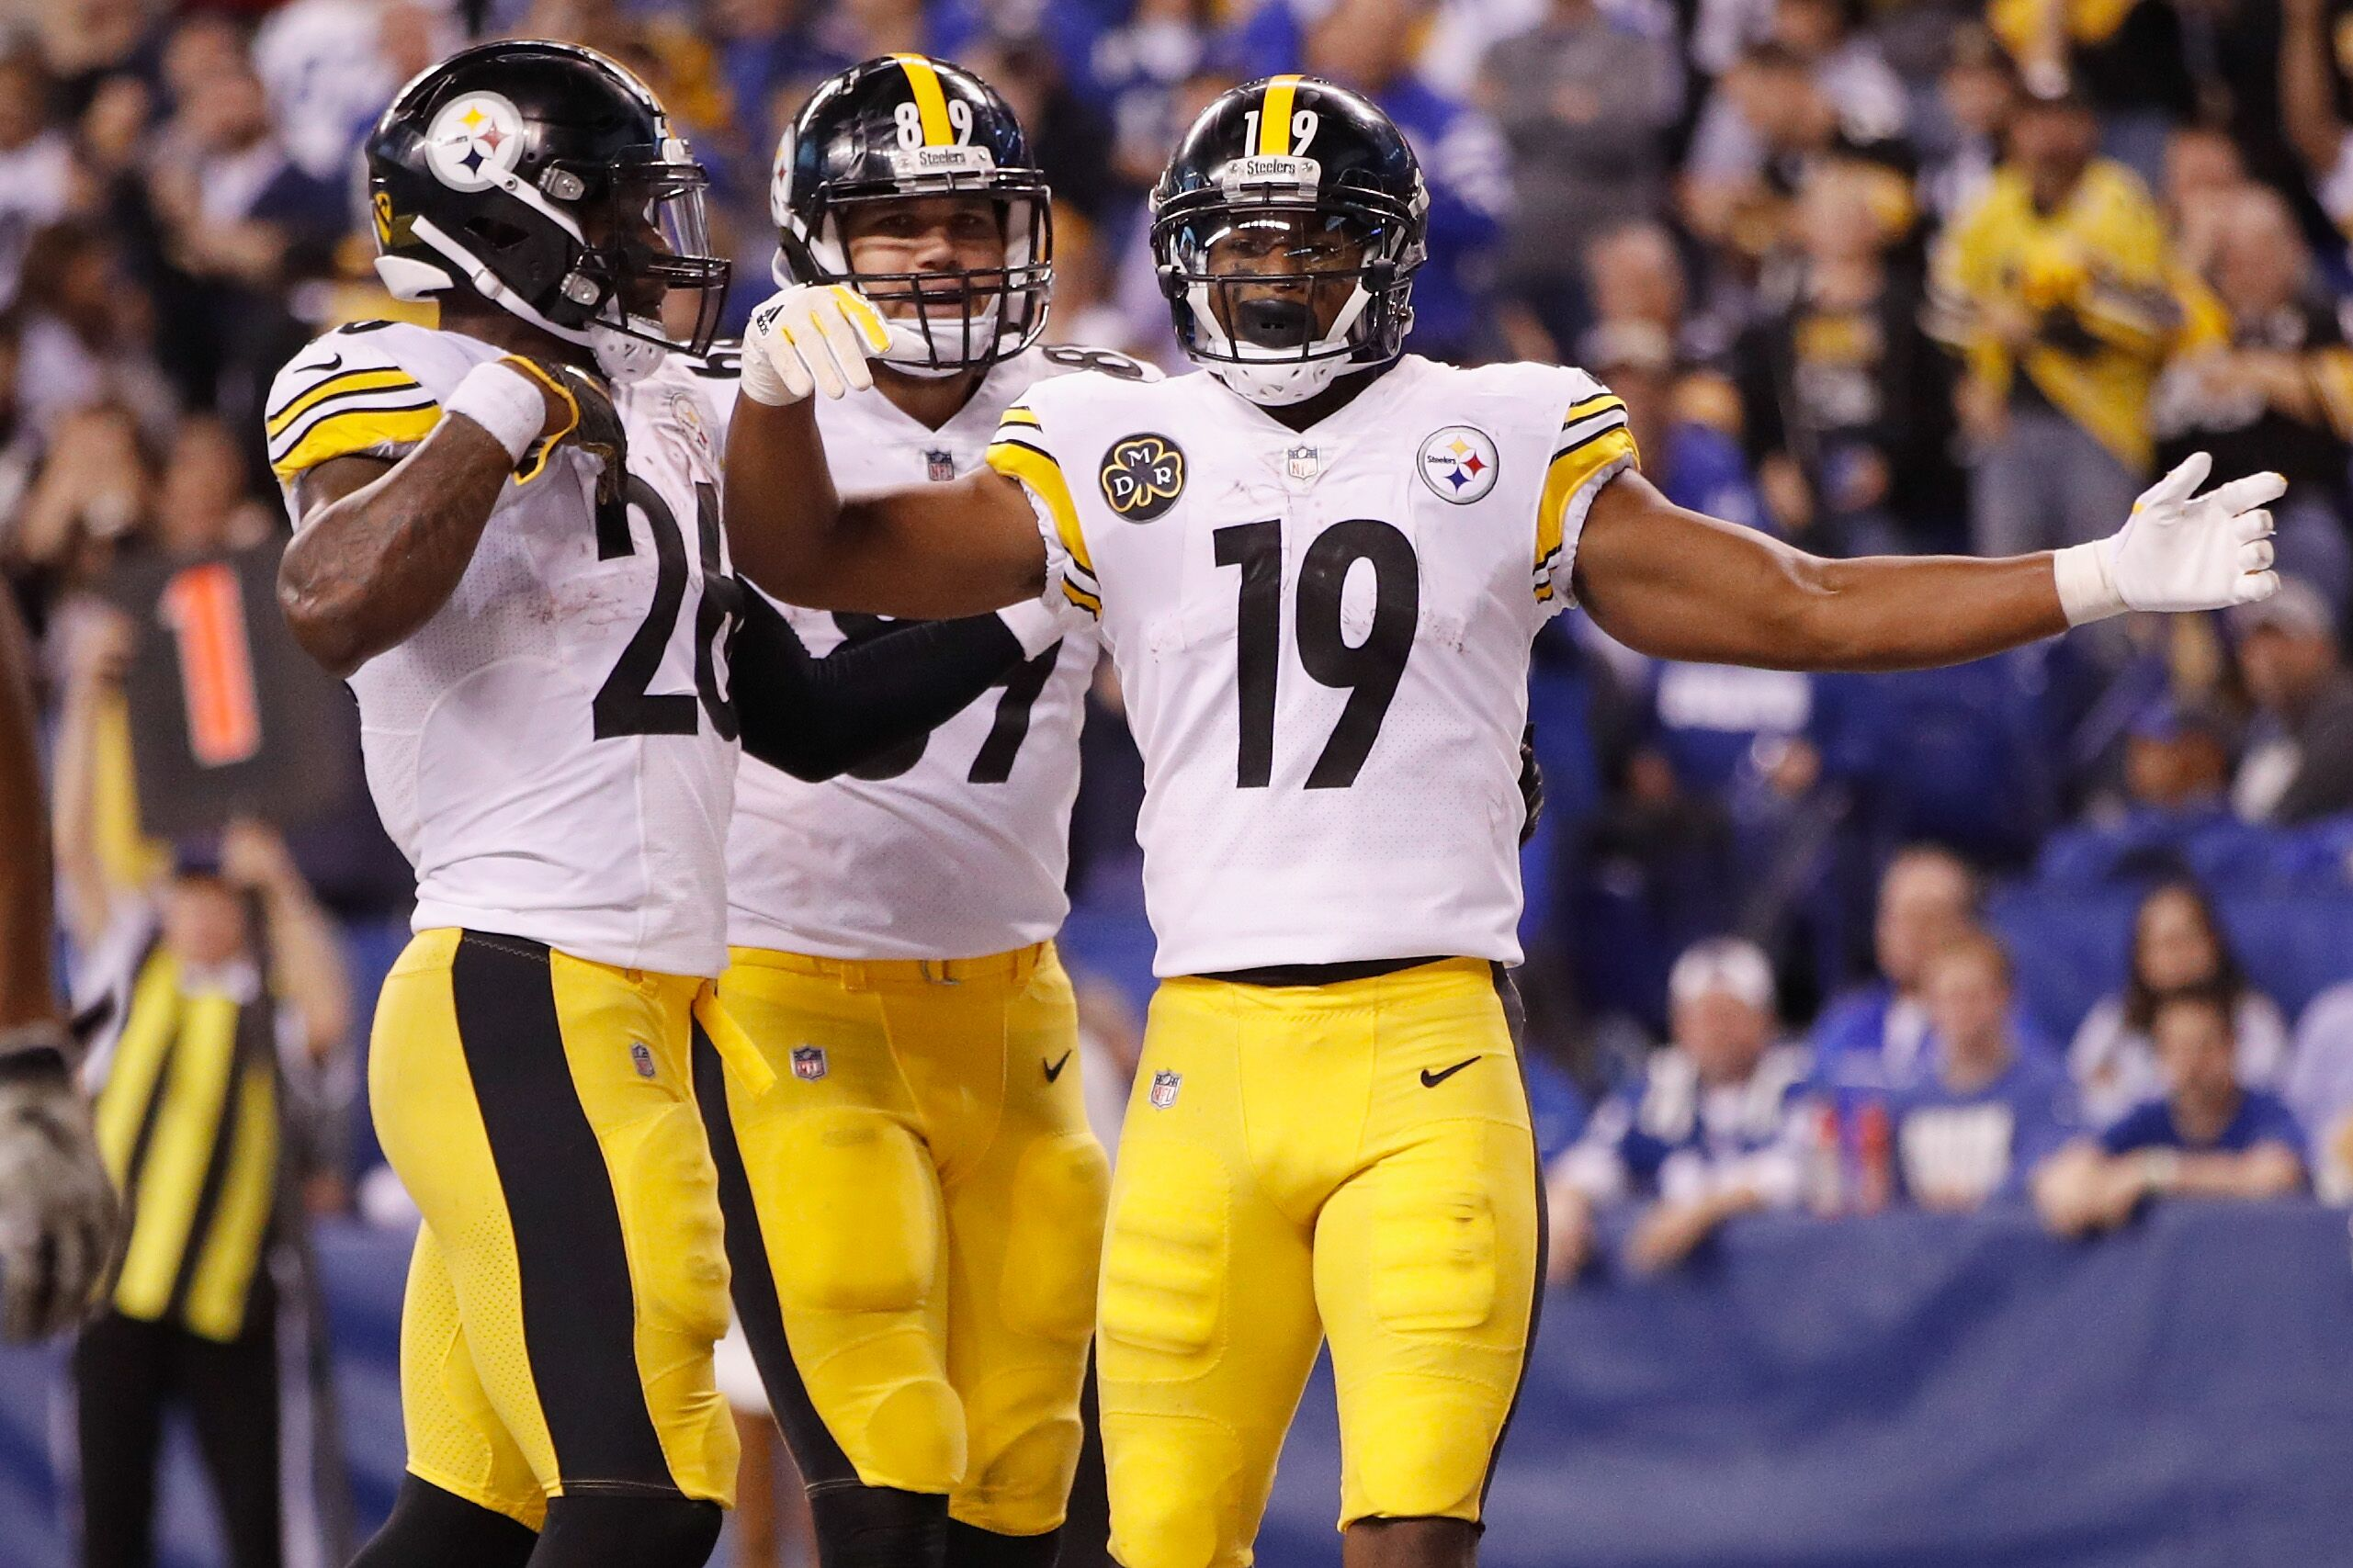 873328514-pittsburgh-steelers-v-indianapolis-colts.jpg